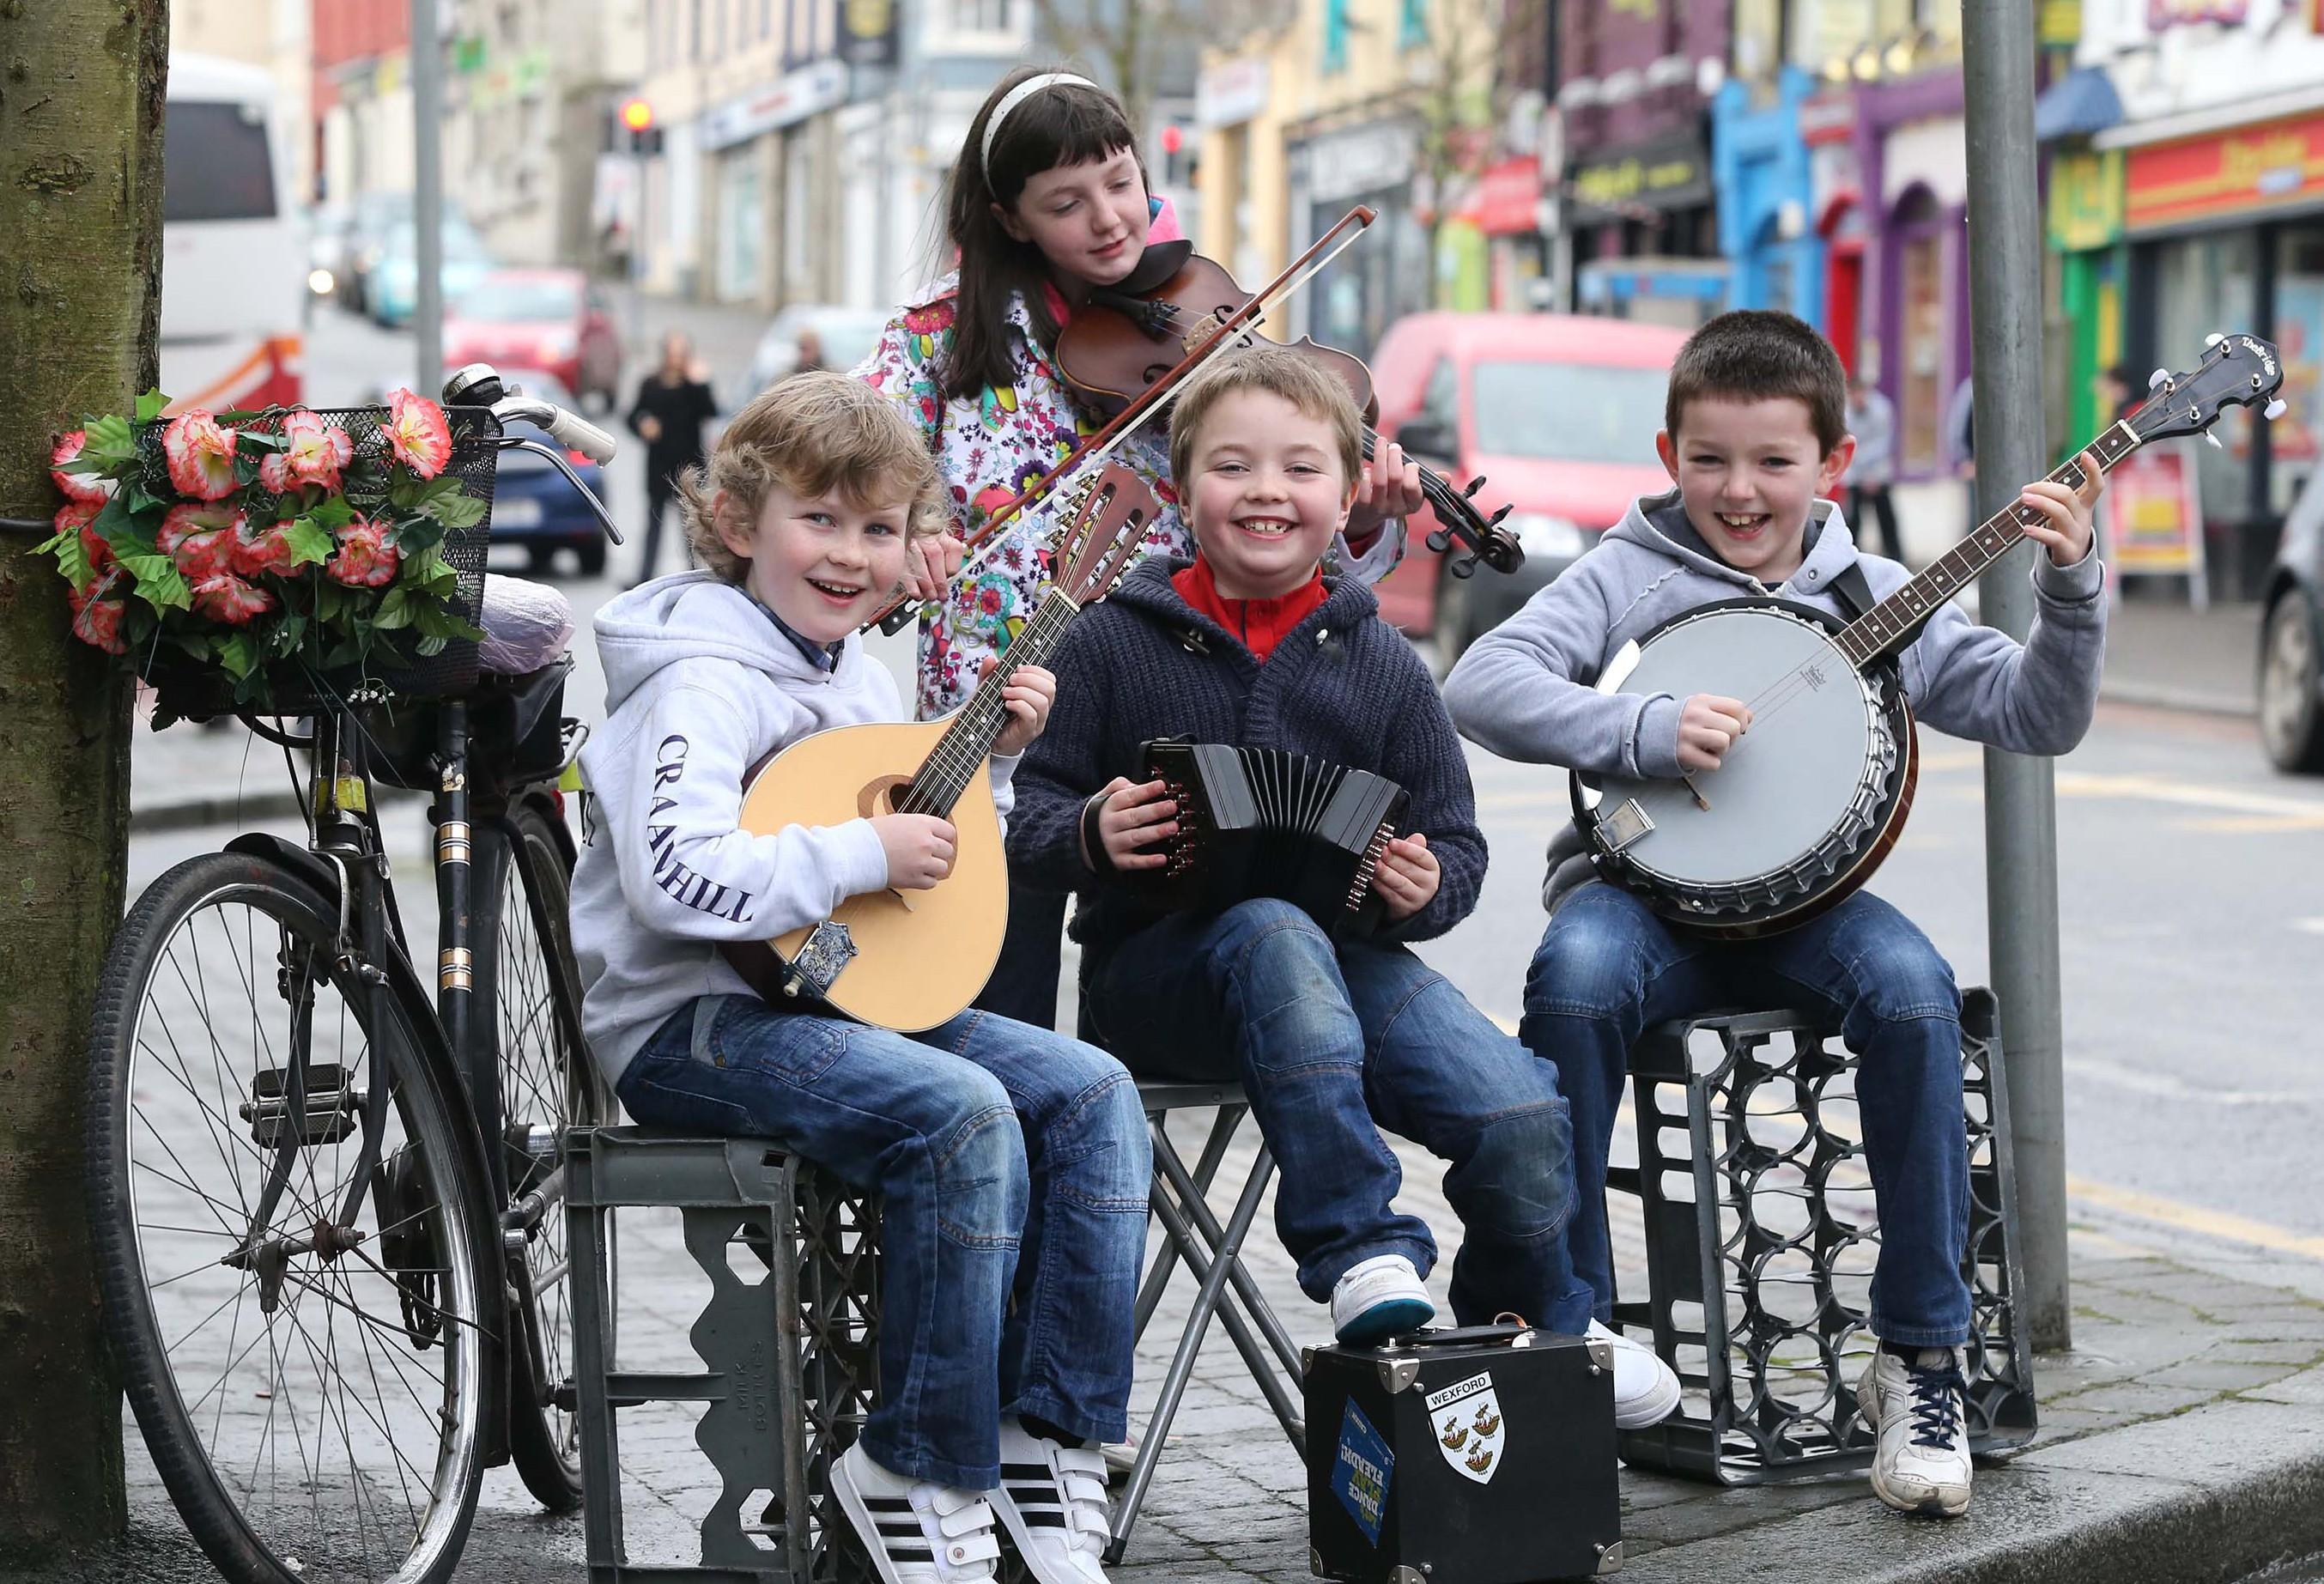 Wexford gears up for second 'Cuisle Cheoil' trad fest